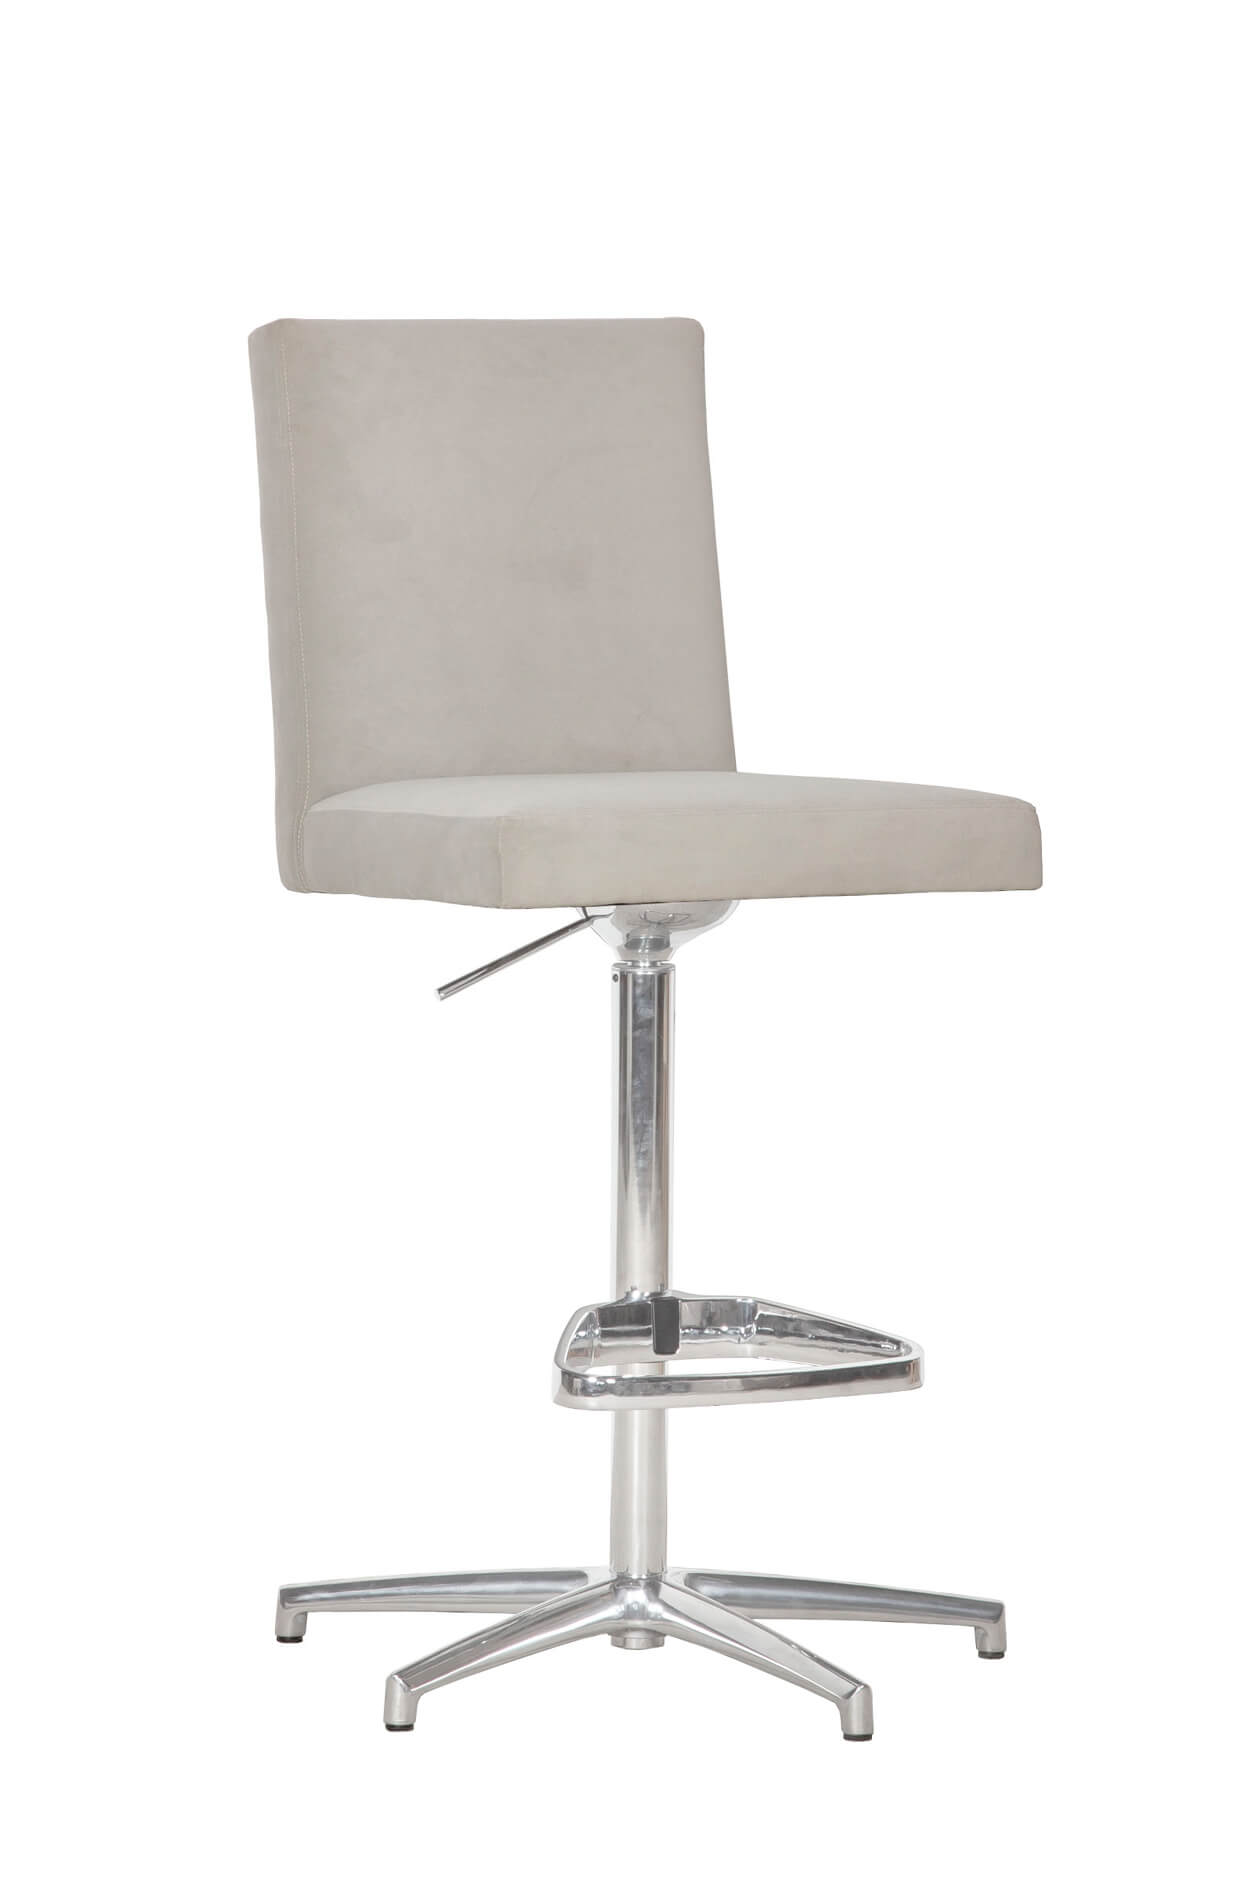 Fairfield's Uma Adjustable Bar Stool Upholstered Back with Nailhead Trim in Nickel Metal Finish